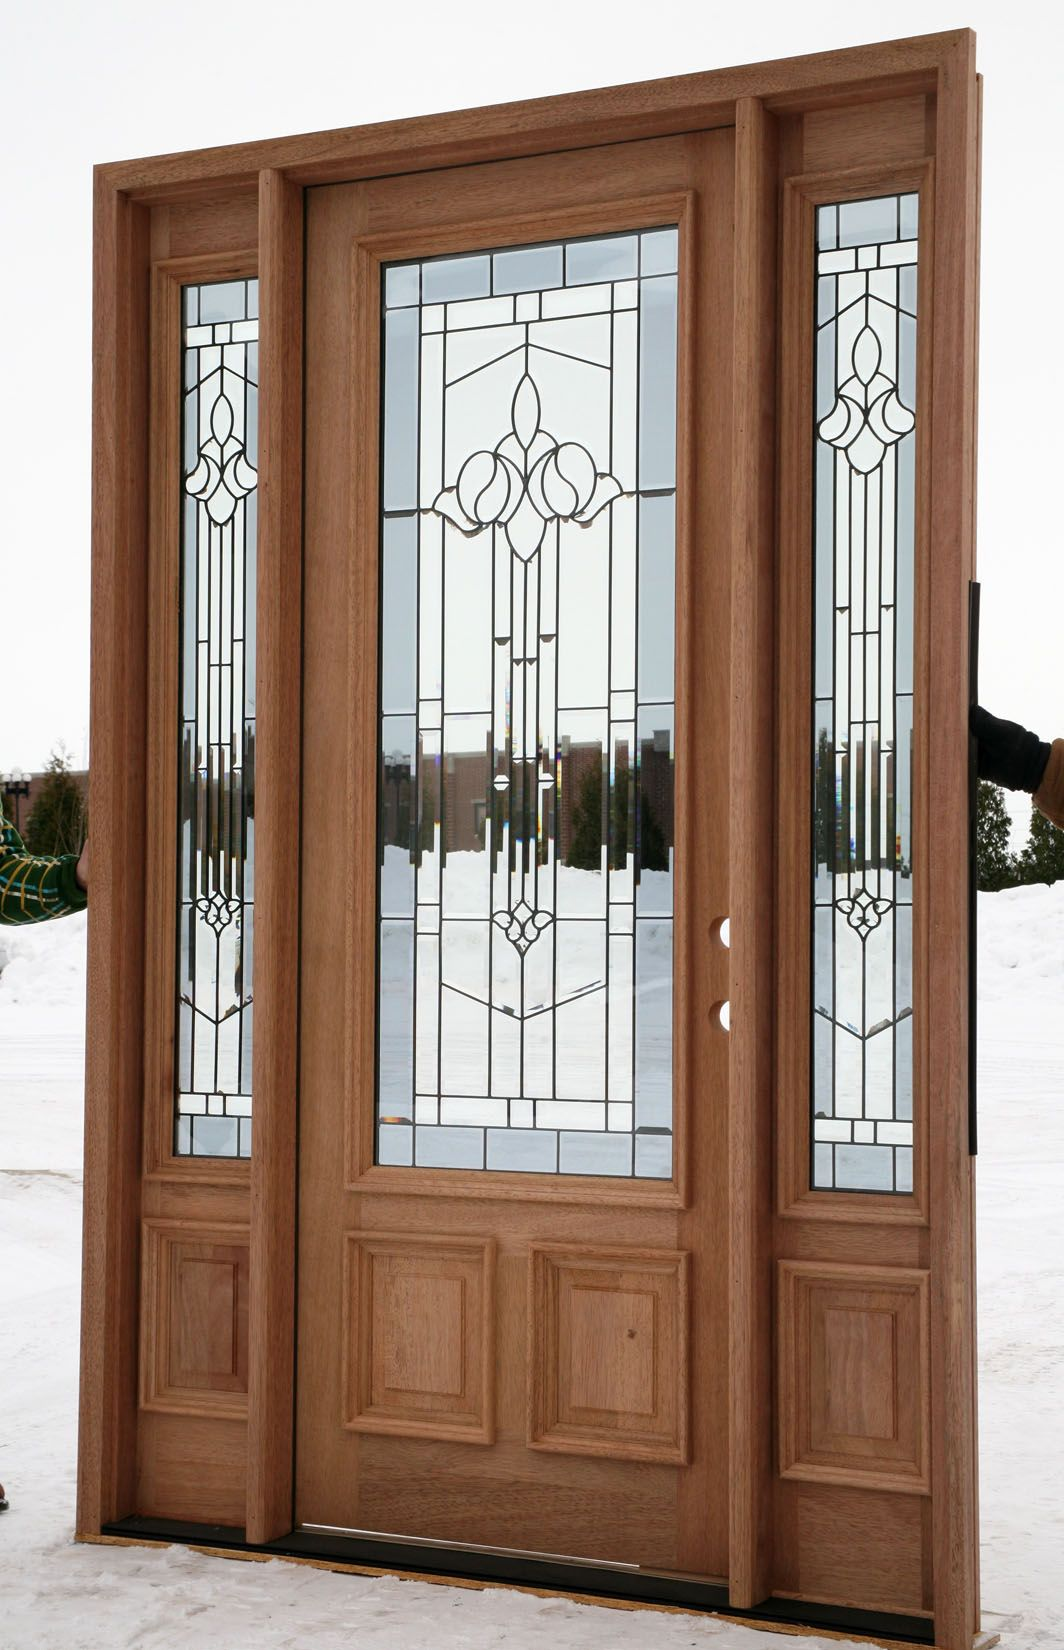 Double entry doors with sidelights - Find This Pin And More On Doors Entry Doors With Sidelights